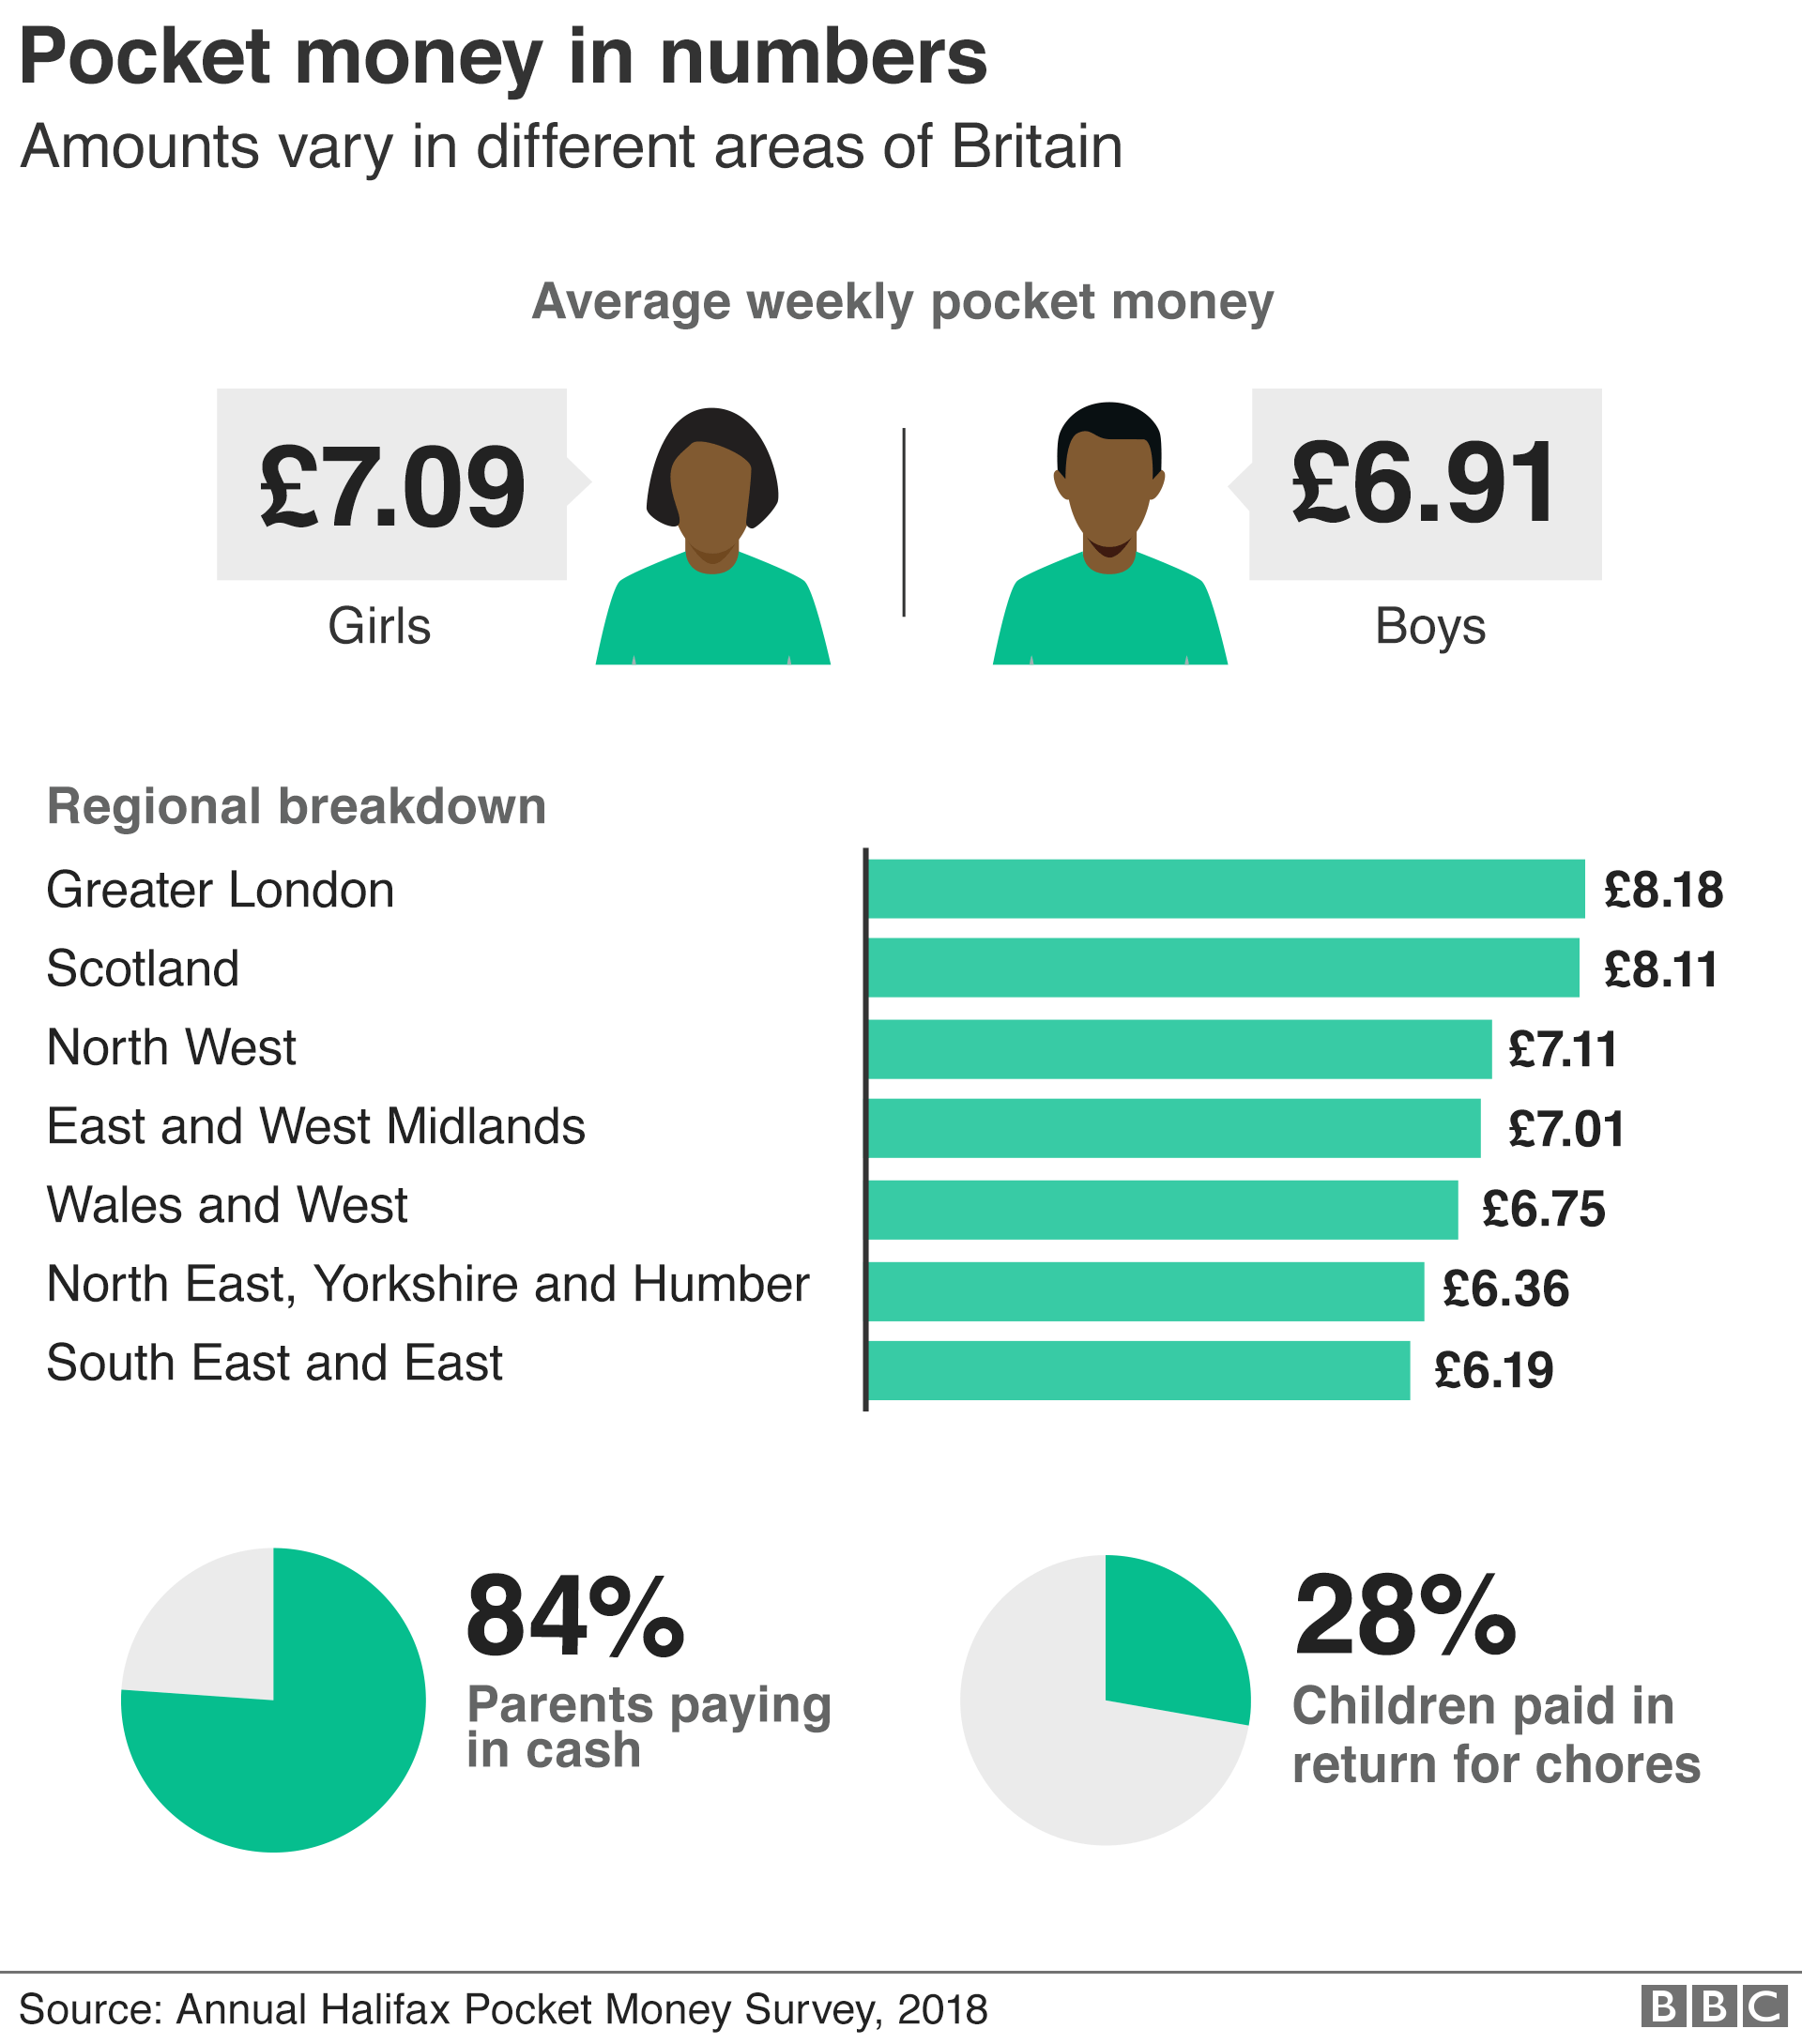 Pocket money in numbers graphic